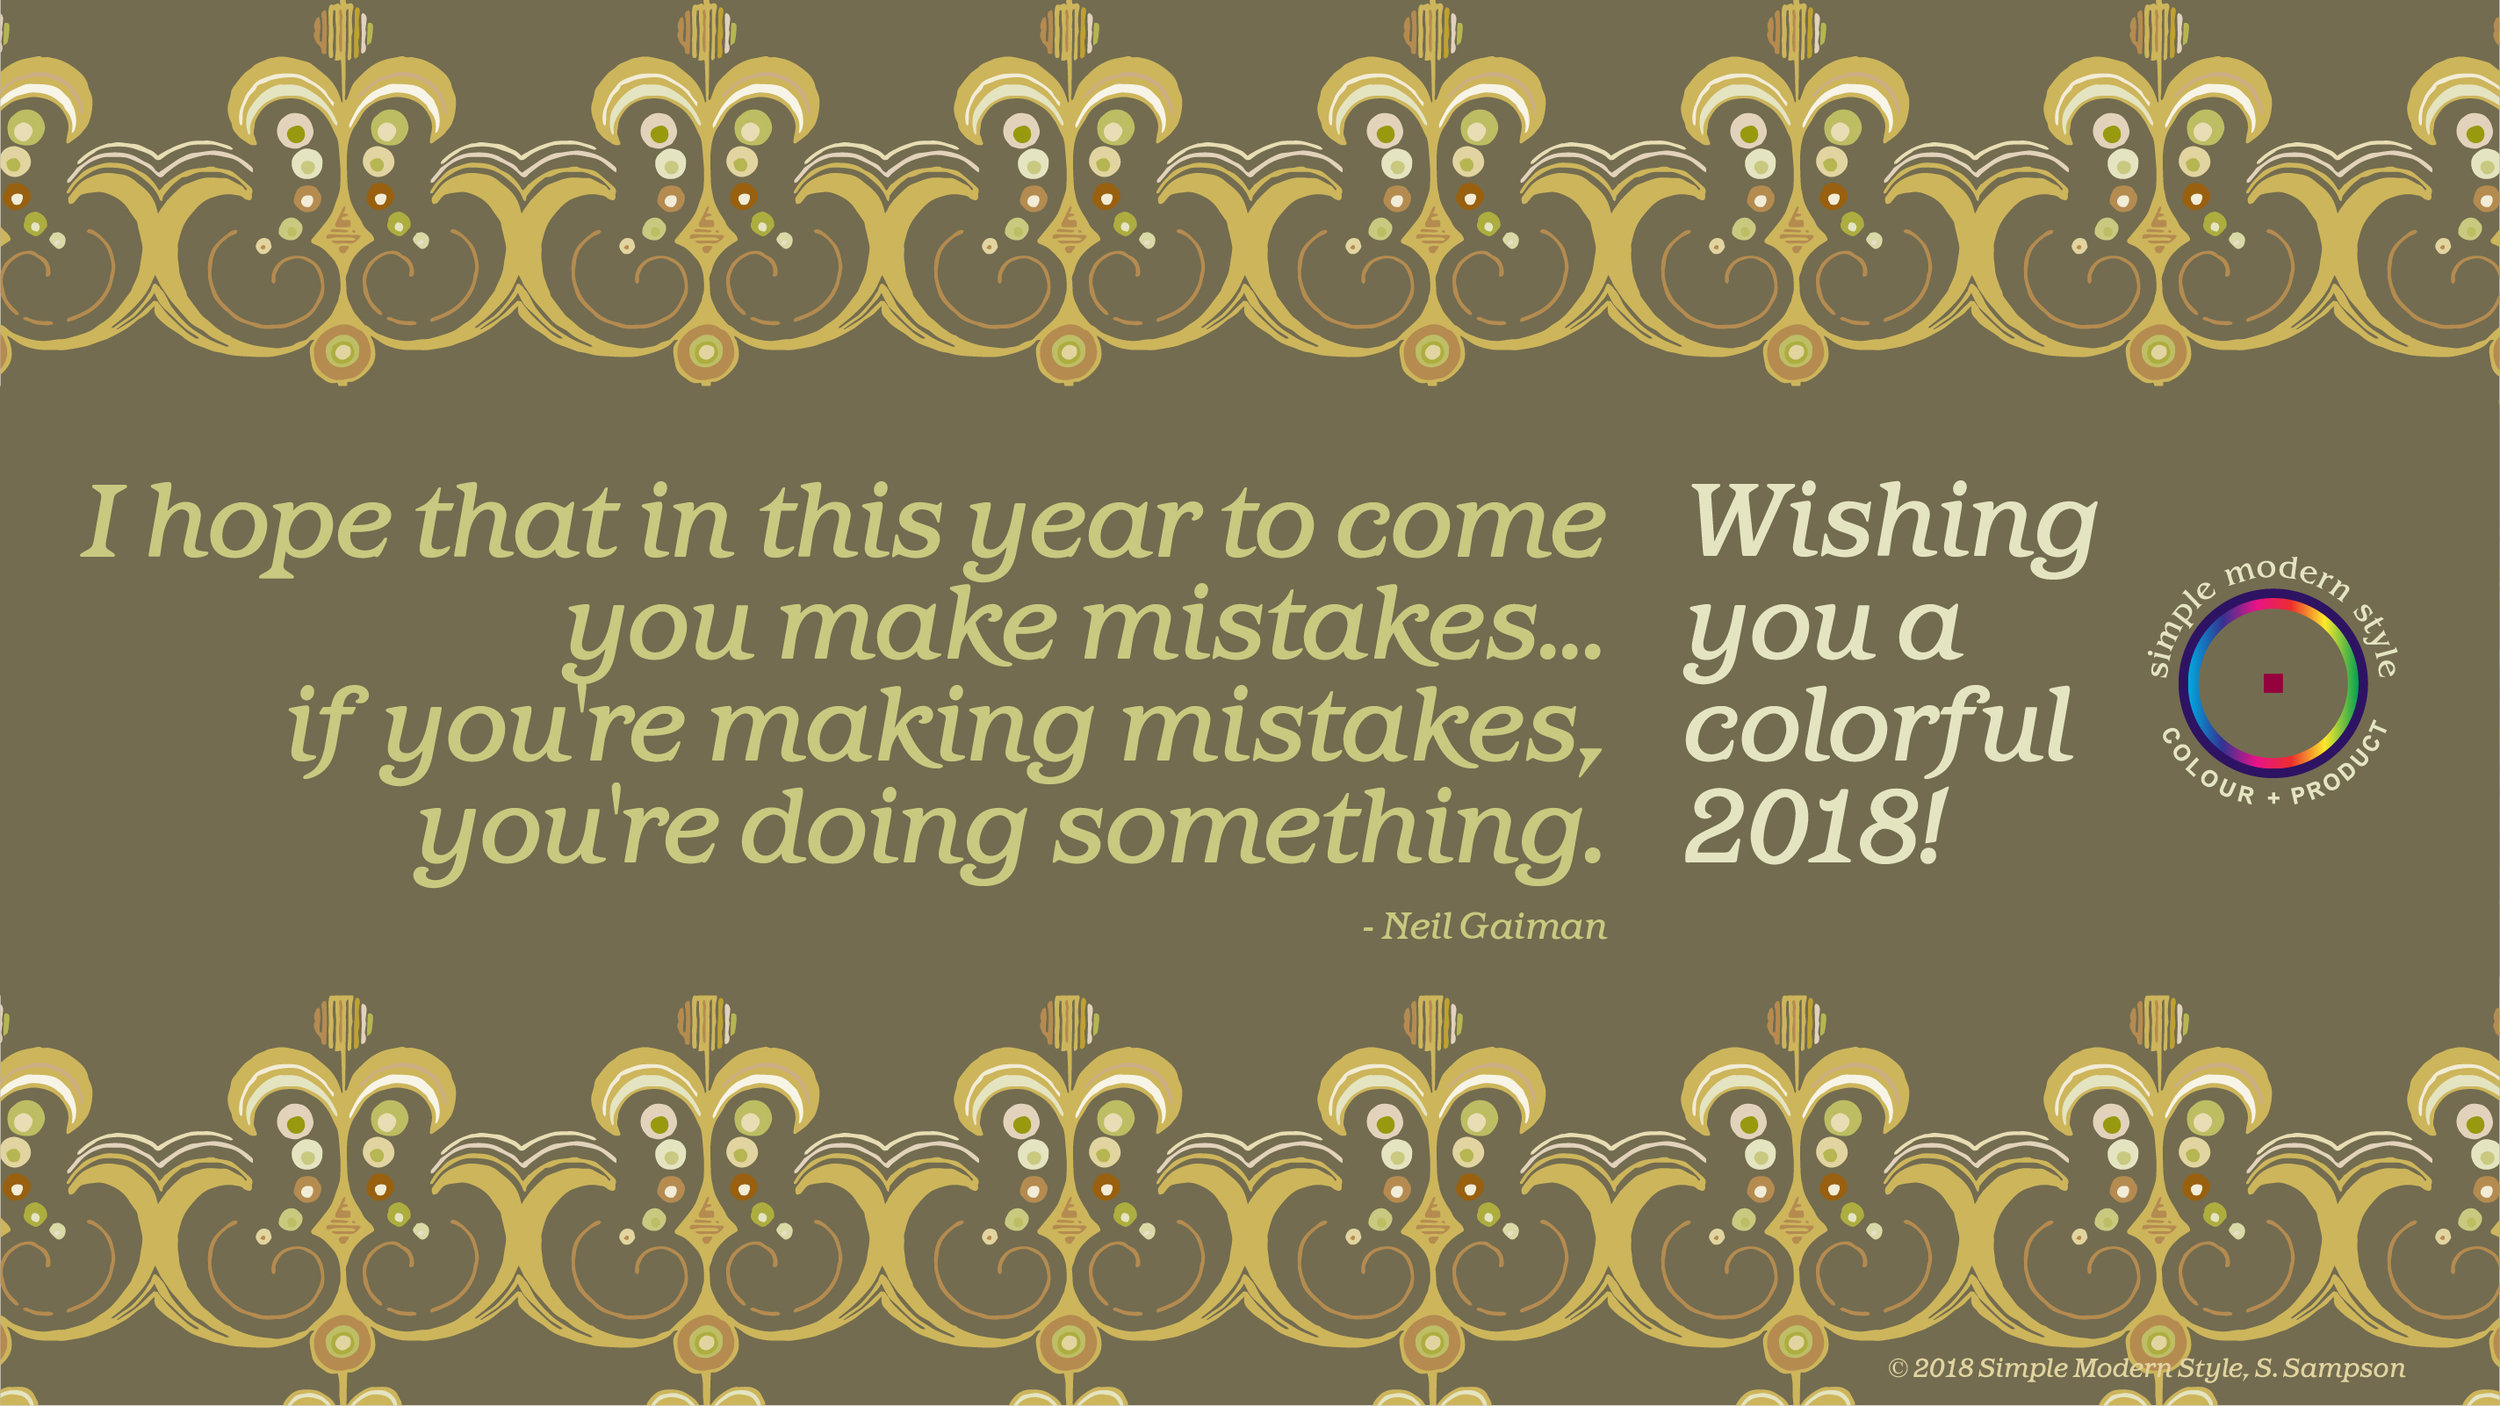 J000188 - SMS New Year Post.jpg